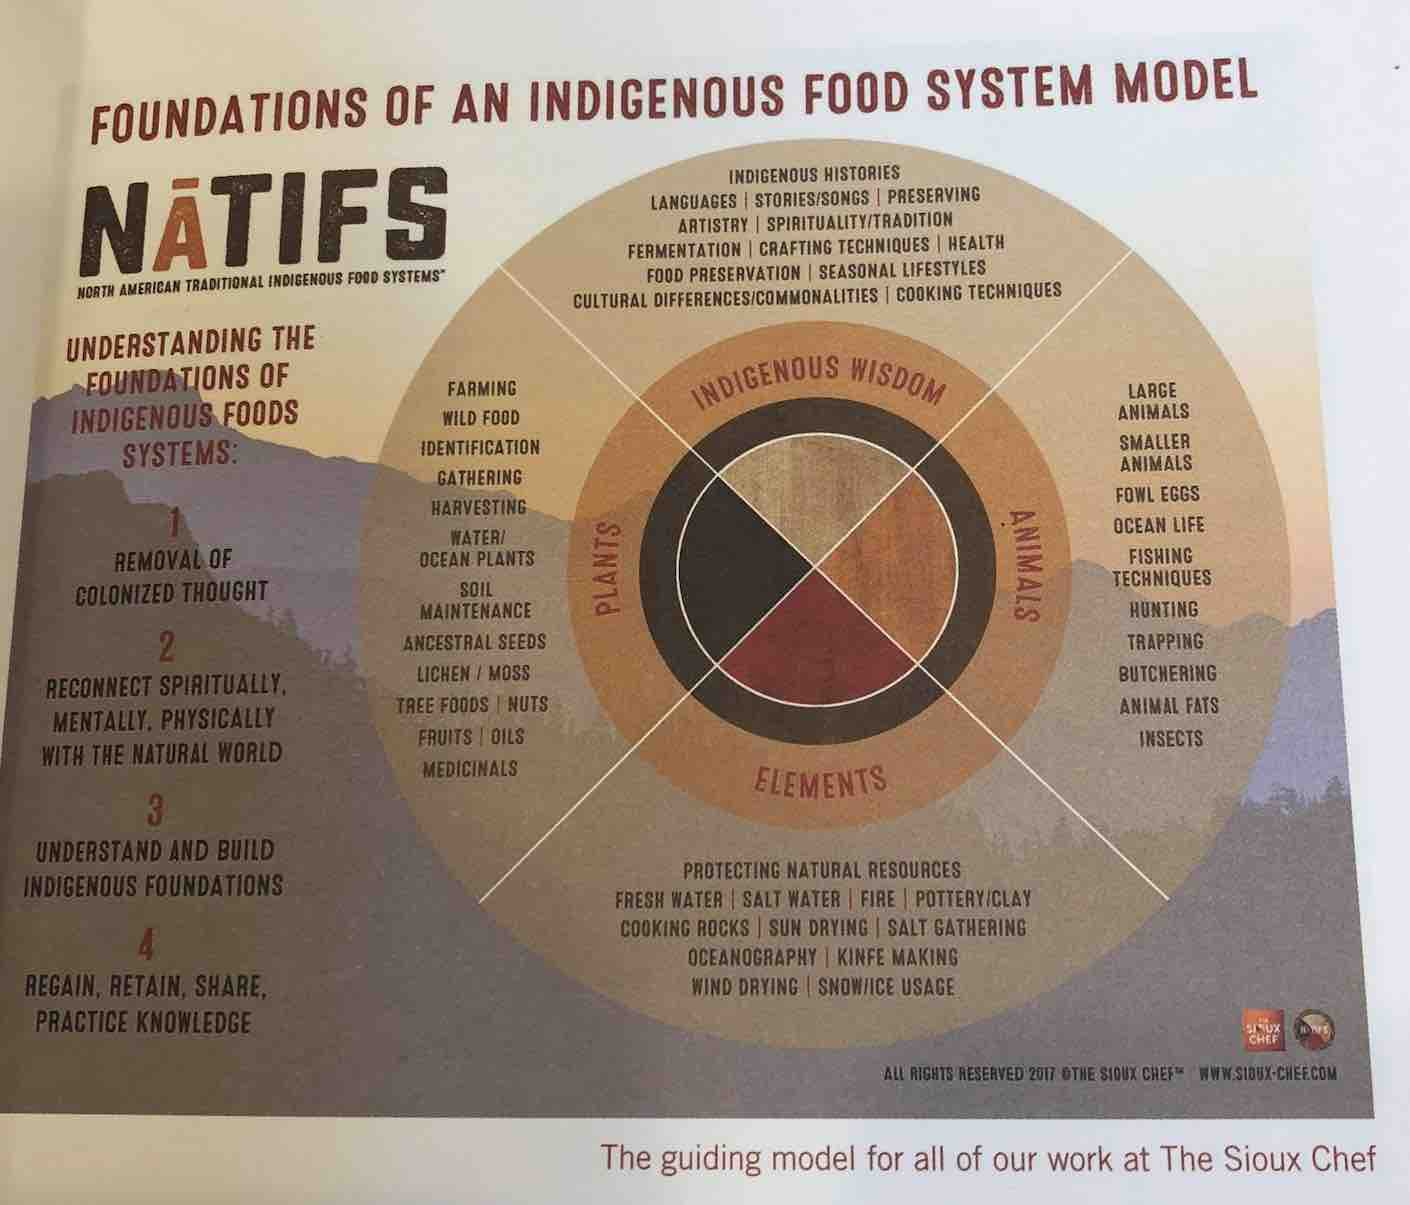 Indigenous food system model